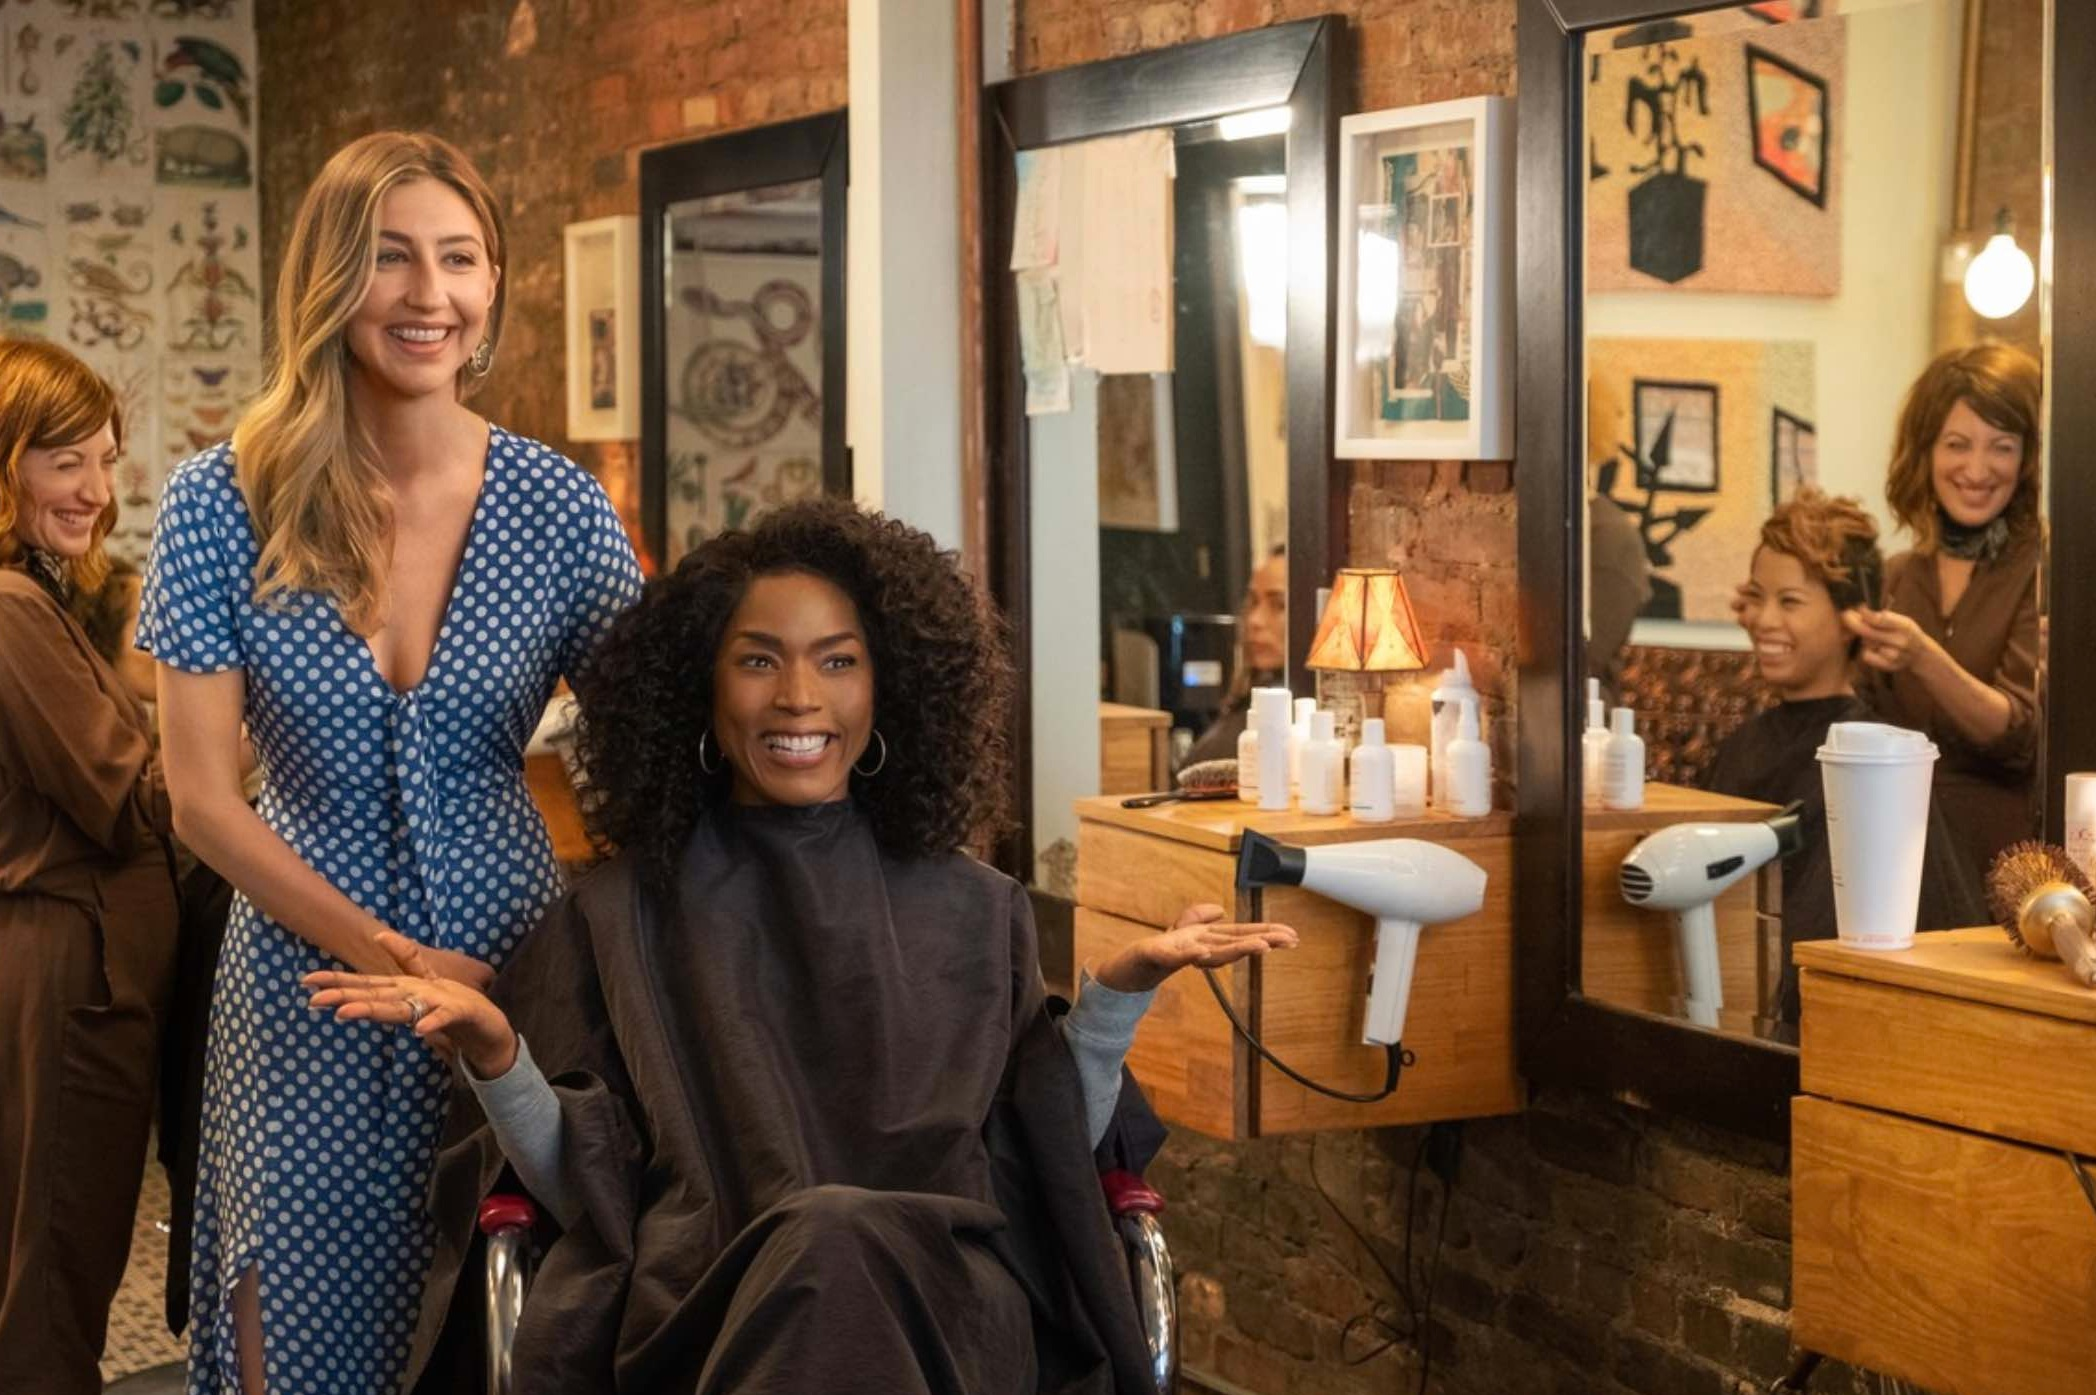 Otherhood,   directed by Cindy Chupack of  Sex in the City.  Pictured: salon owner Amy Schiappa, Margarita Allen, Heidi Gardner, and Angela Bassett  And yes! Fringe salon really does specialize in curly hair. Visit our  Instagram  to see more styles.